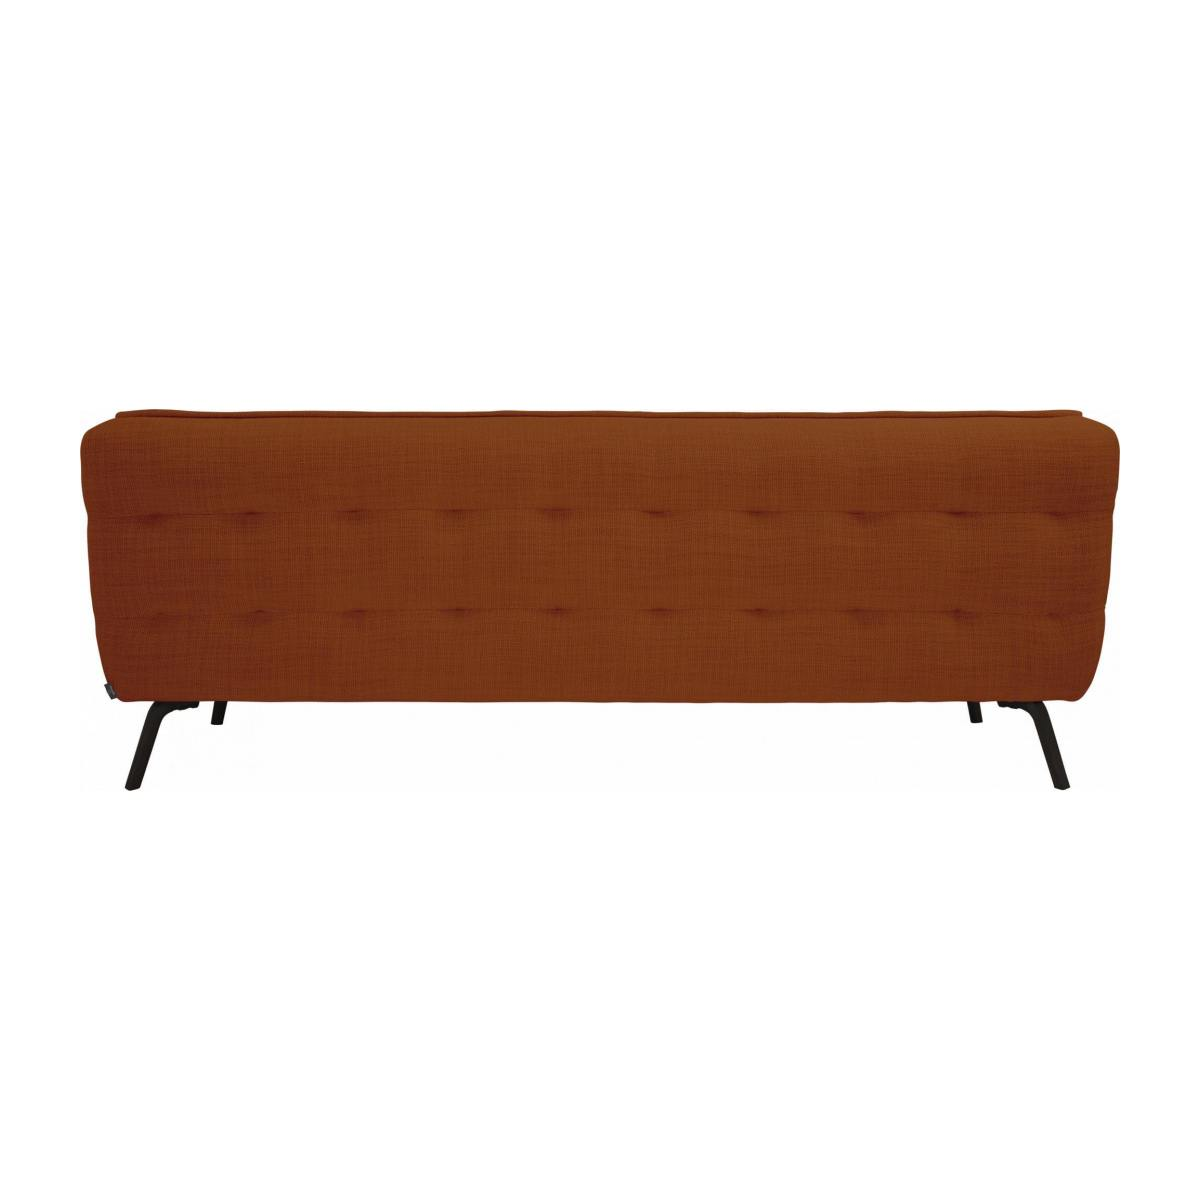 3 seater sofa in Fasoli fabric, warm red rock and dark legs n°3